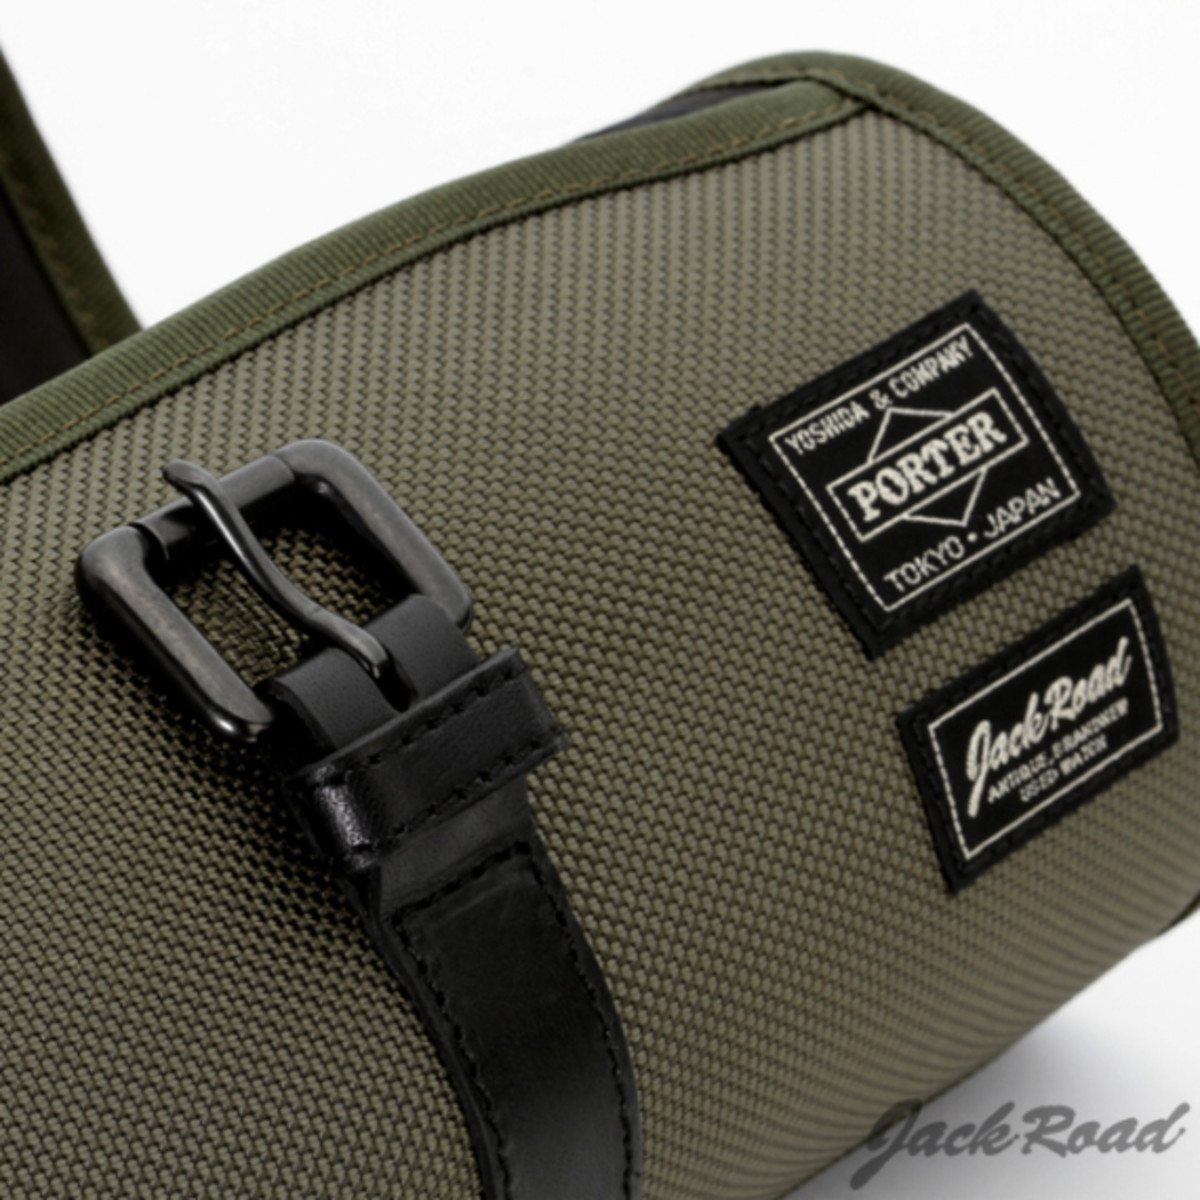 jack-road-porter-watch-carrying-case-07